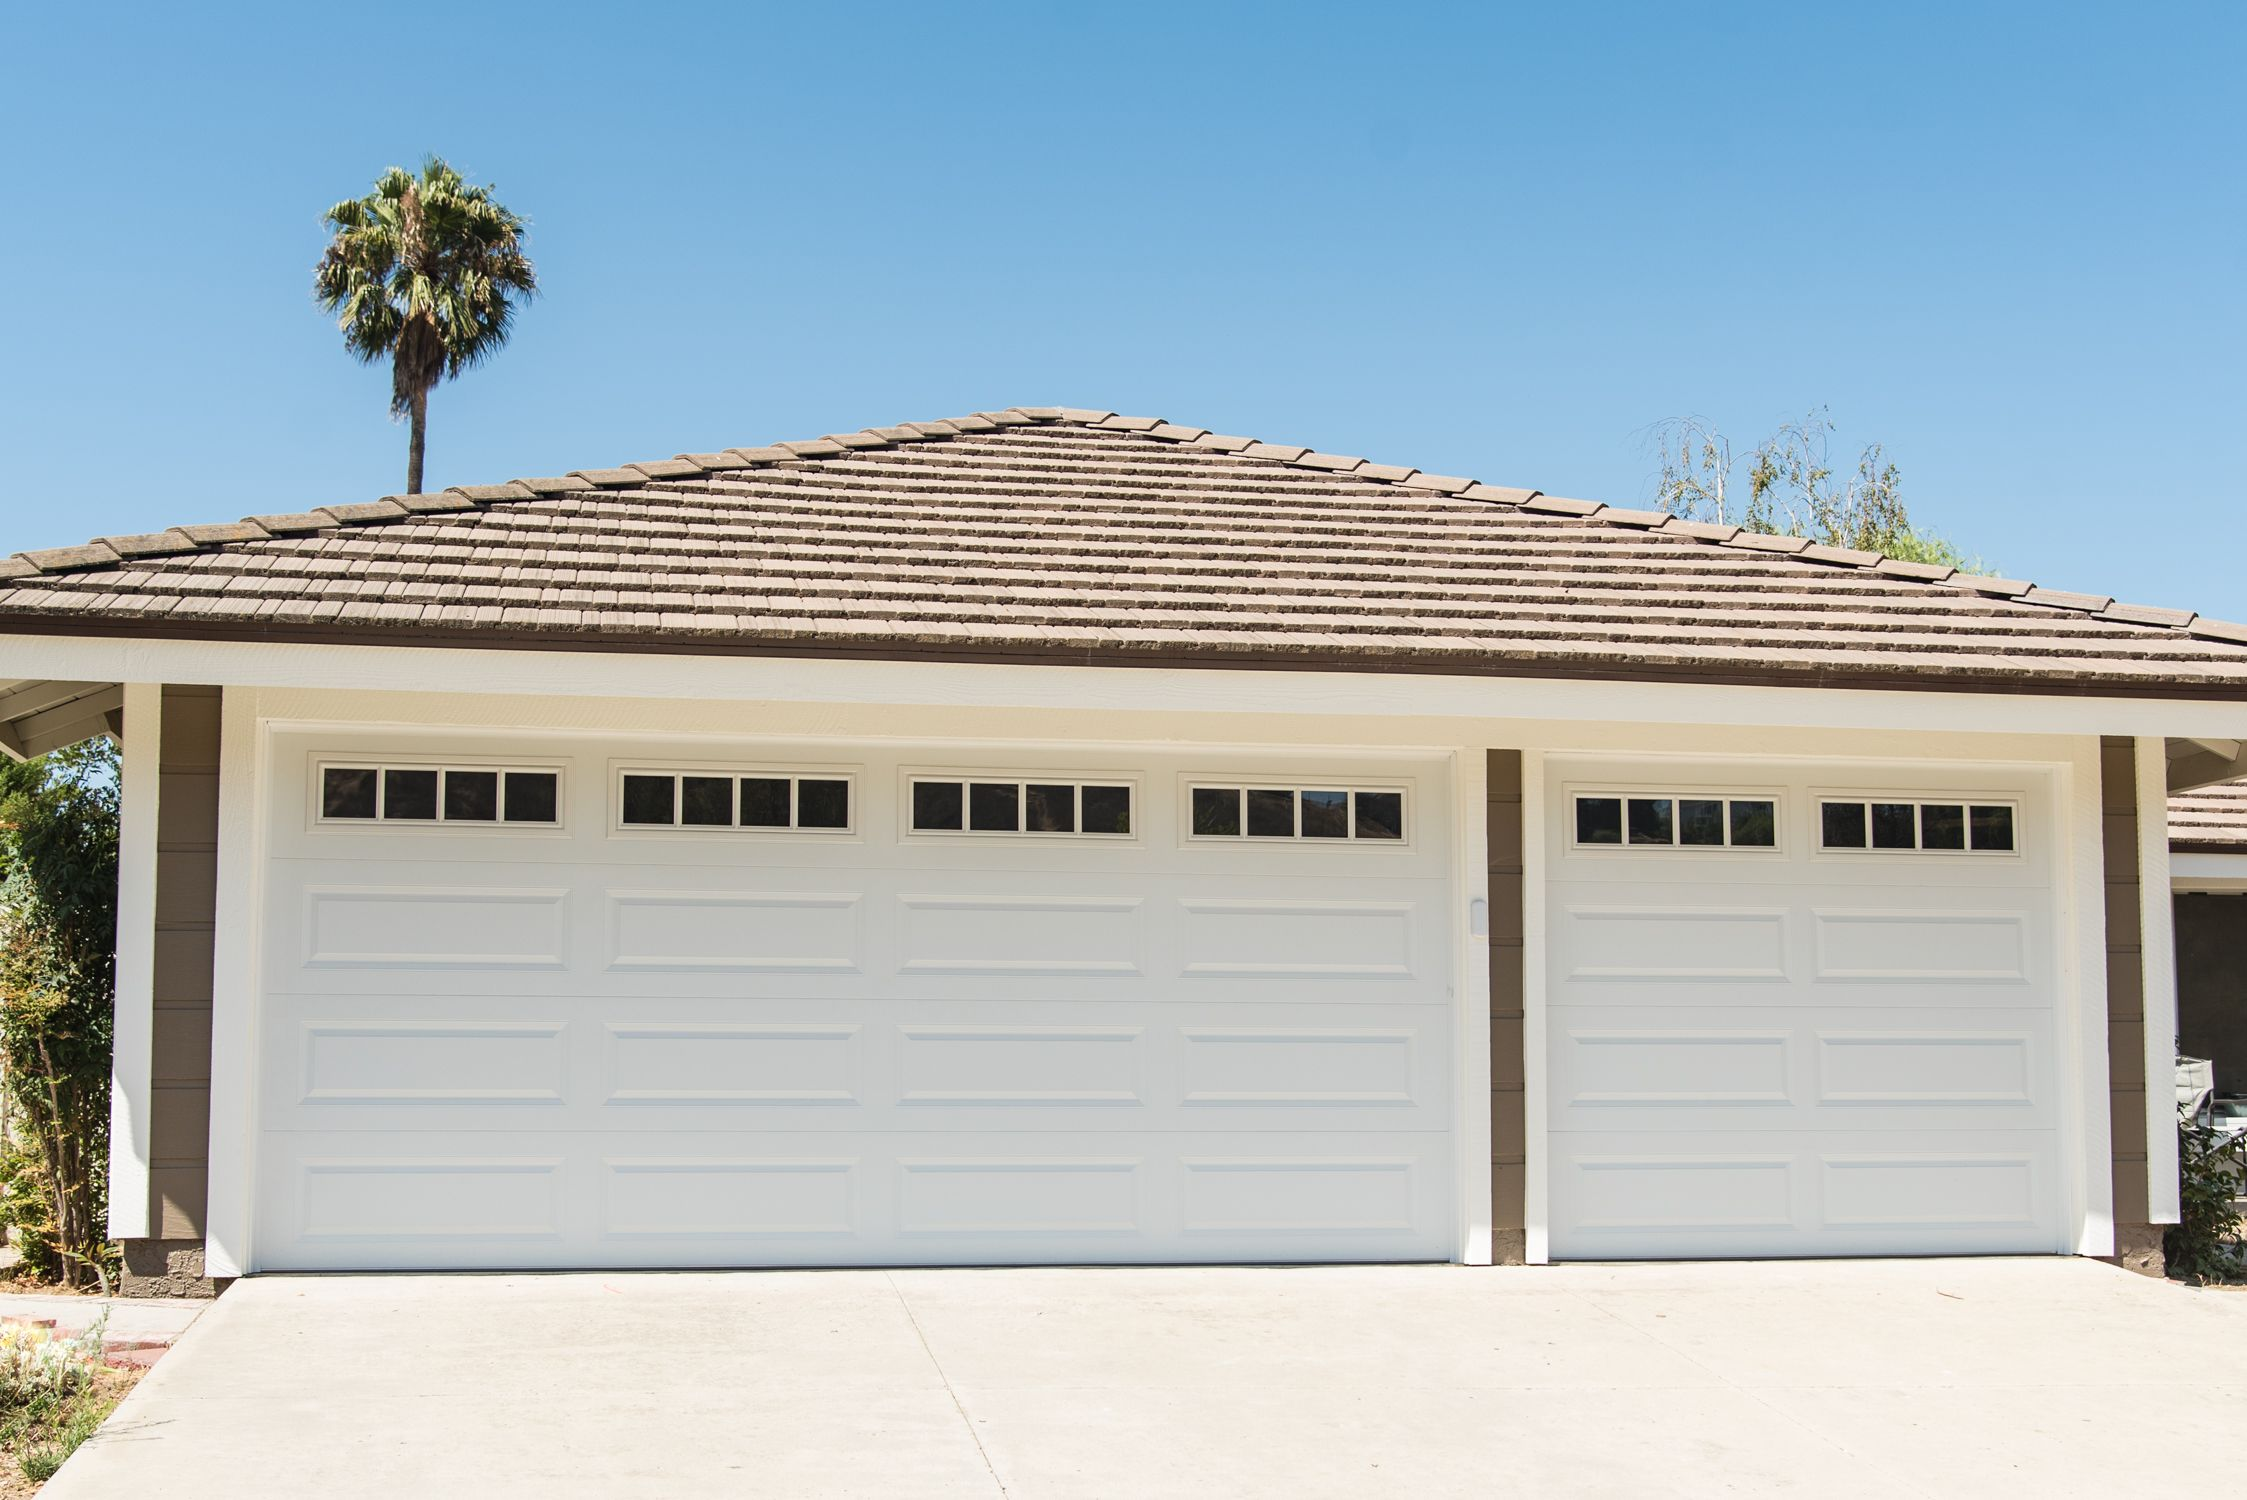 product detail waterproof american door garage buy